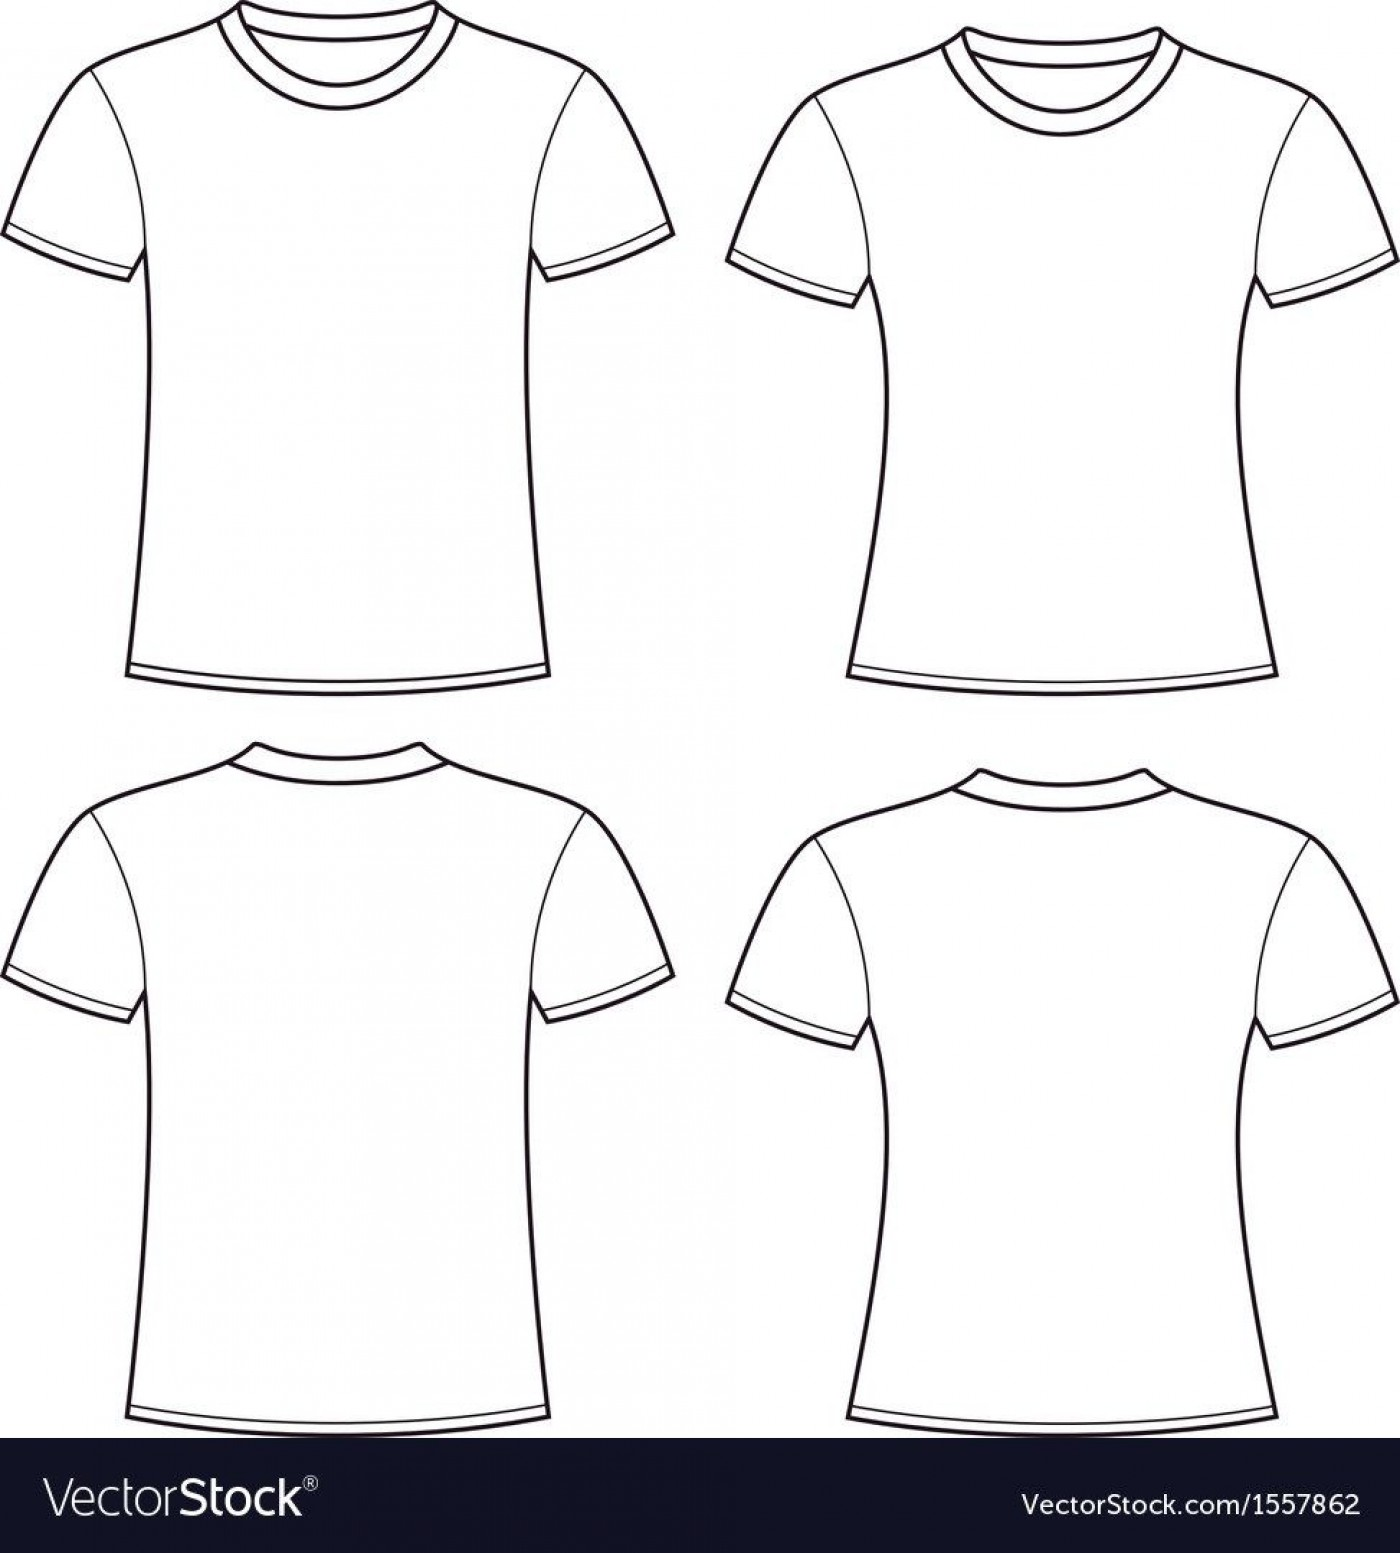 005 Rare Plain T Shirt Template Picture  Blank Front And Back1400